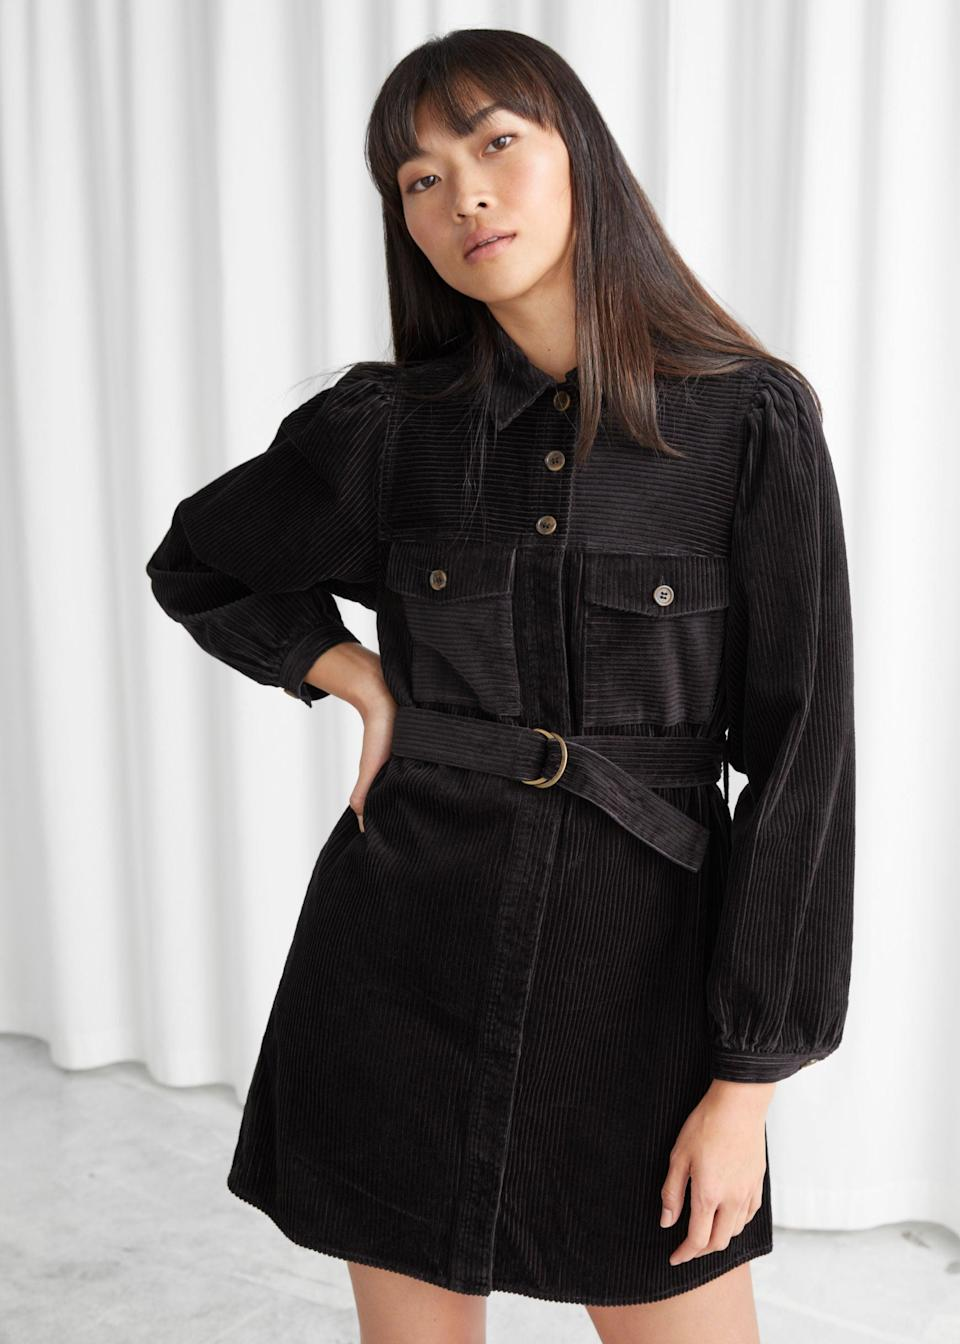 """<br><br><strong>& Other Stories</strong> Belted Corduroy Mini Dress, $, available at <a href=""""https://www.stories.com/en_gbp/clothing/dresses/mini-dresses/product.belted-corduroy-mini-dress-black.0816022001.html"""" rel=""""nofollow noopener"""" target=""""_blank"""" data-ylk=""""slk:& Other Stories"""" class=""""link rapid-noclick-resp"""">& Other Stories</a>"""